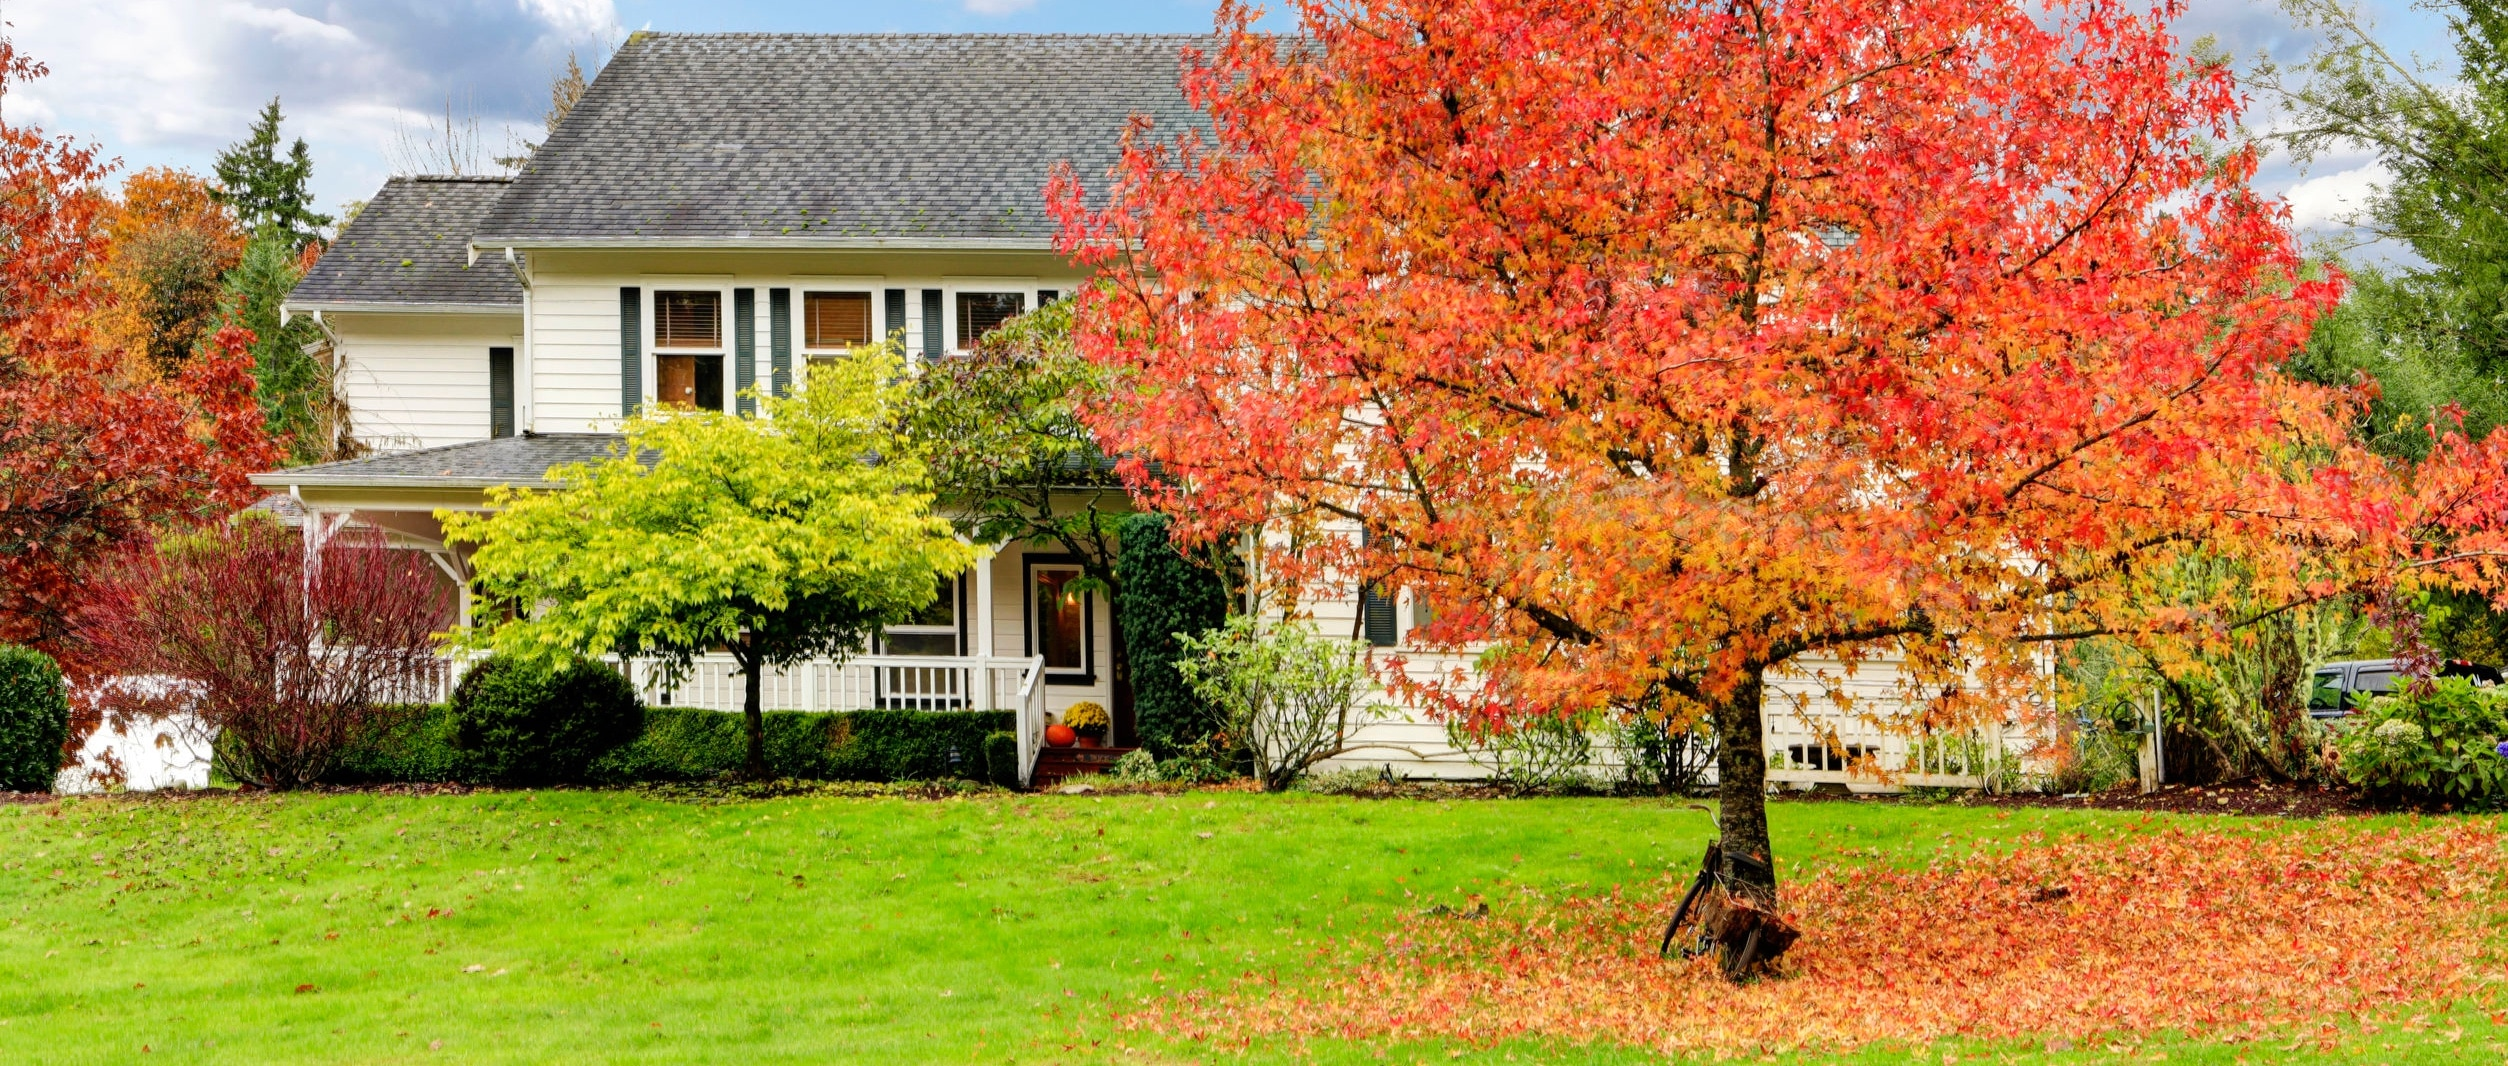 Home and landscape in the fall